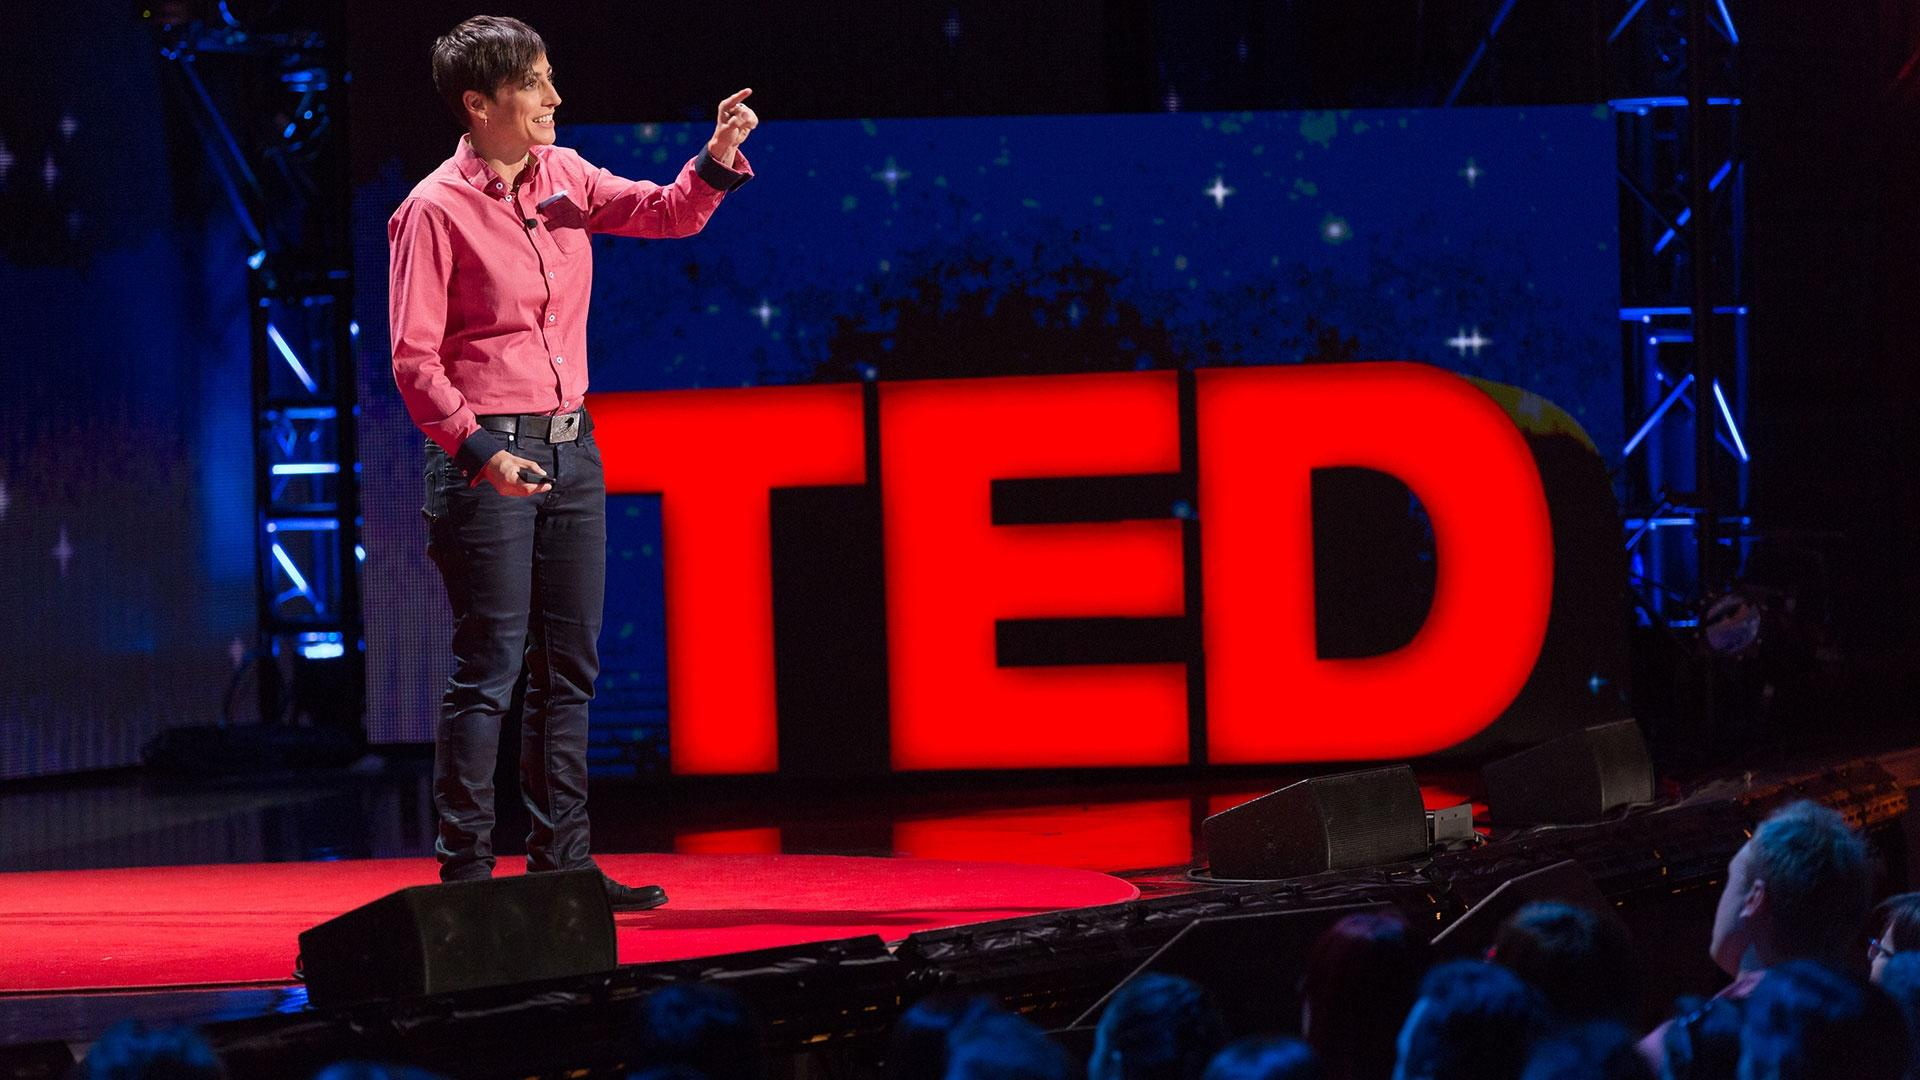 Ted talk online dating in Melbourne